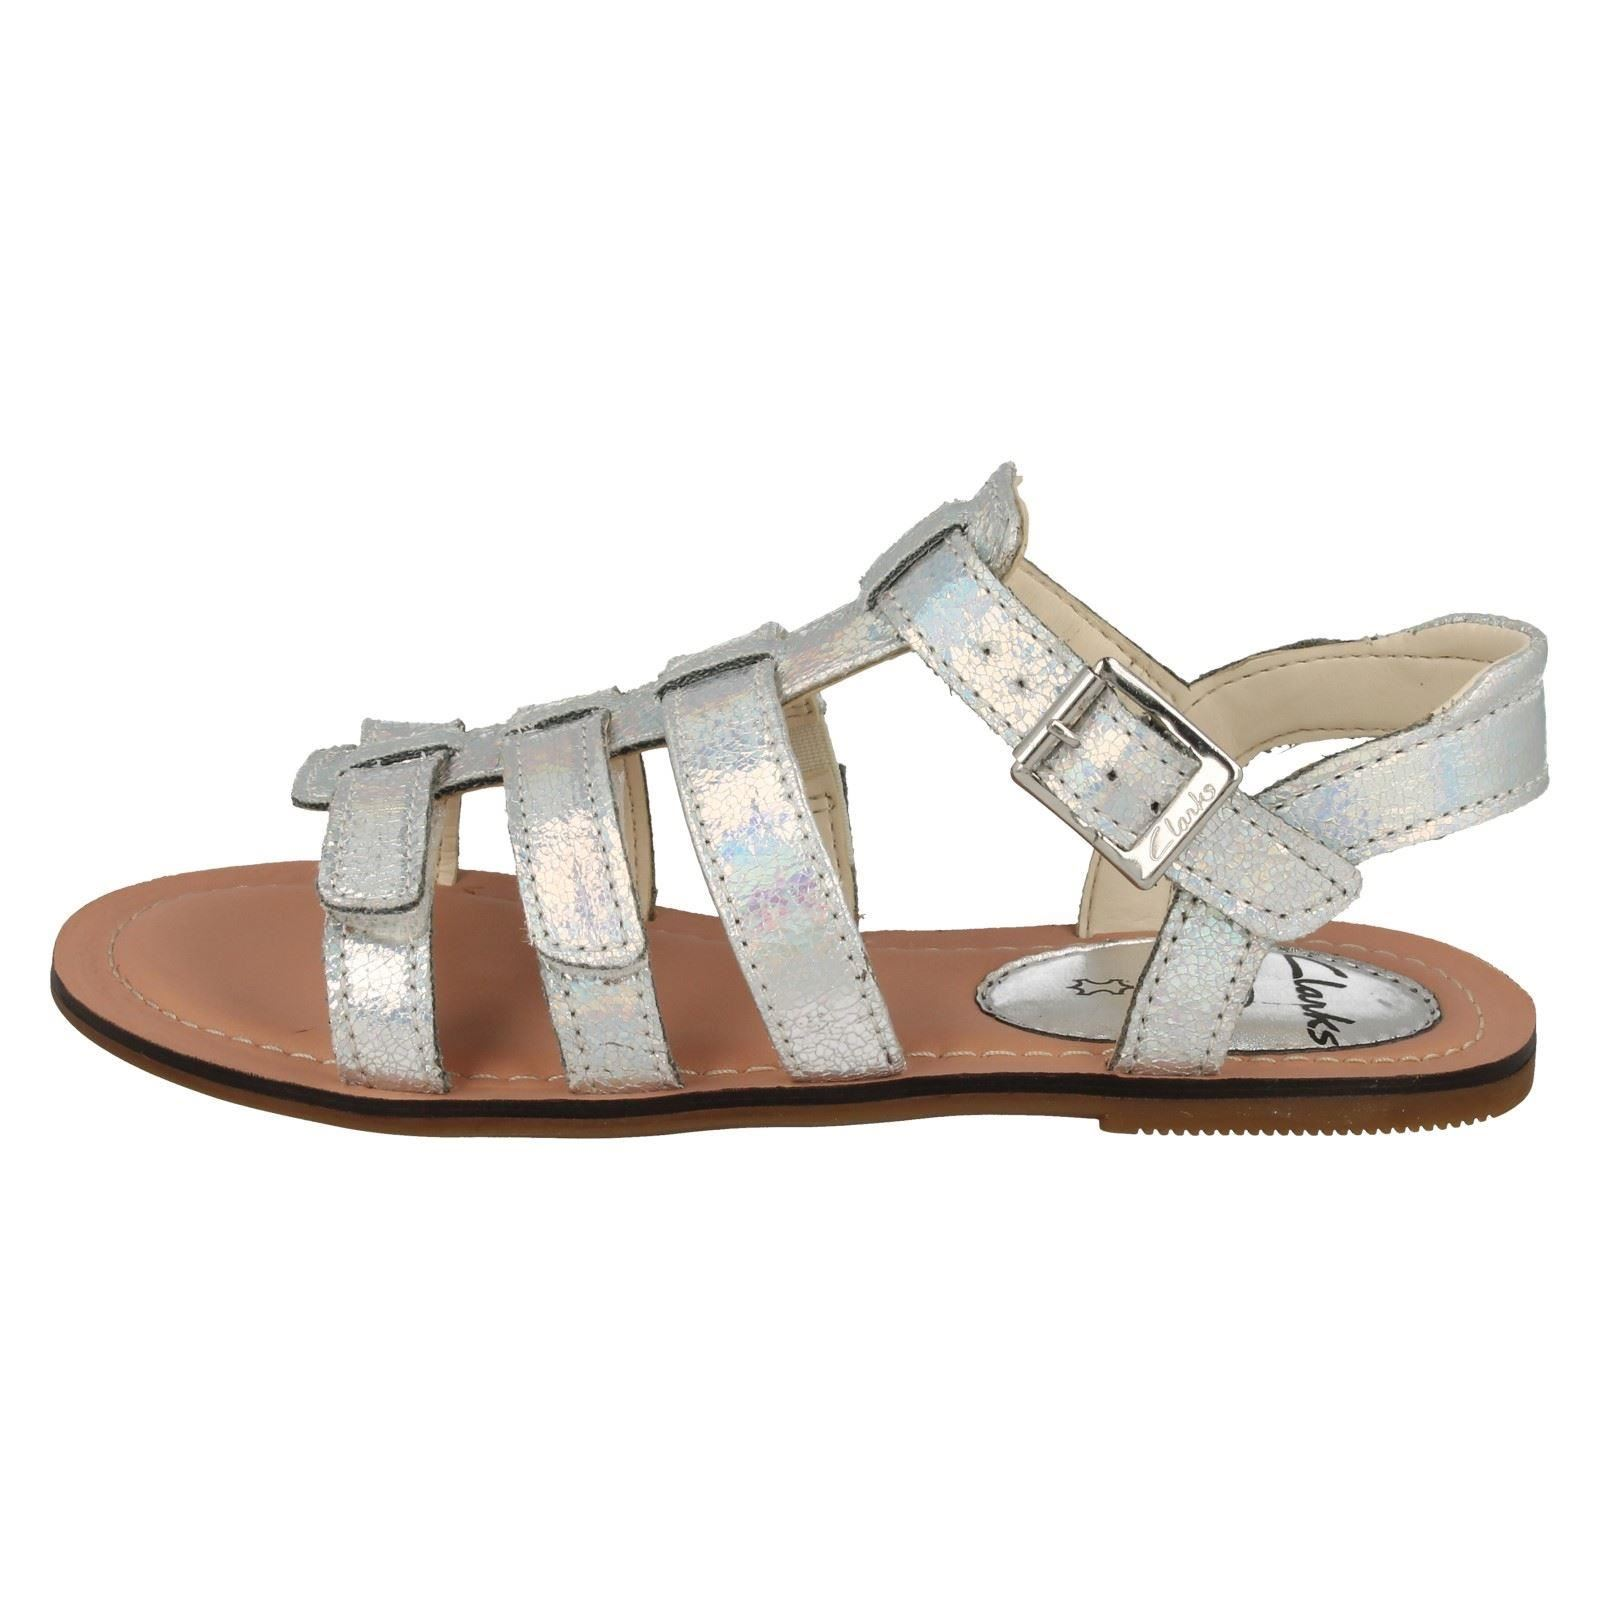 Girls Clarks Flat Summer Gladiator Sandals Loni Joy